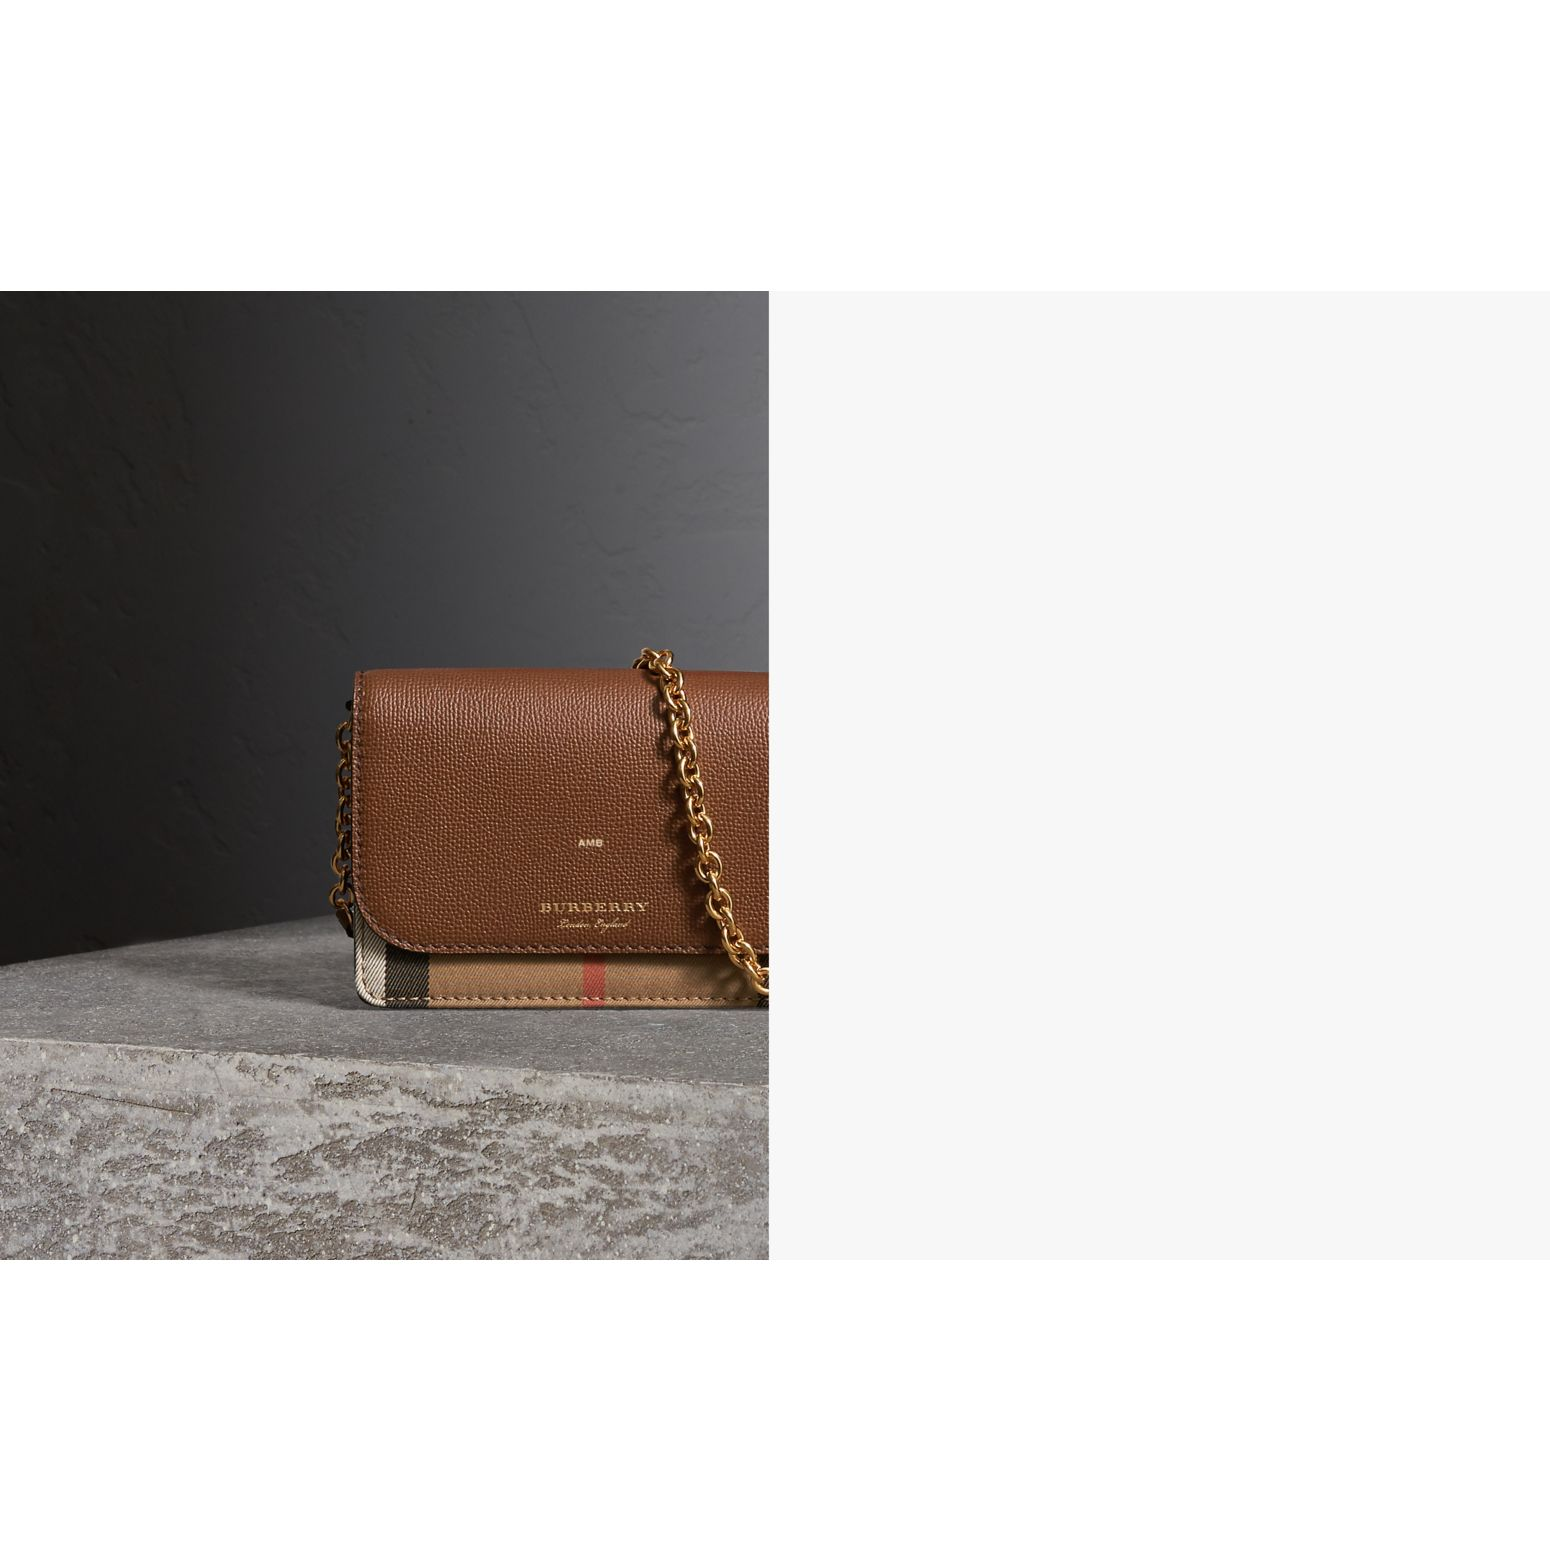 Leather and House Check Wallet with Detachable Strap in Tan - Women | Burberry United States - gallery image 1